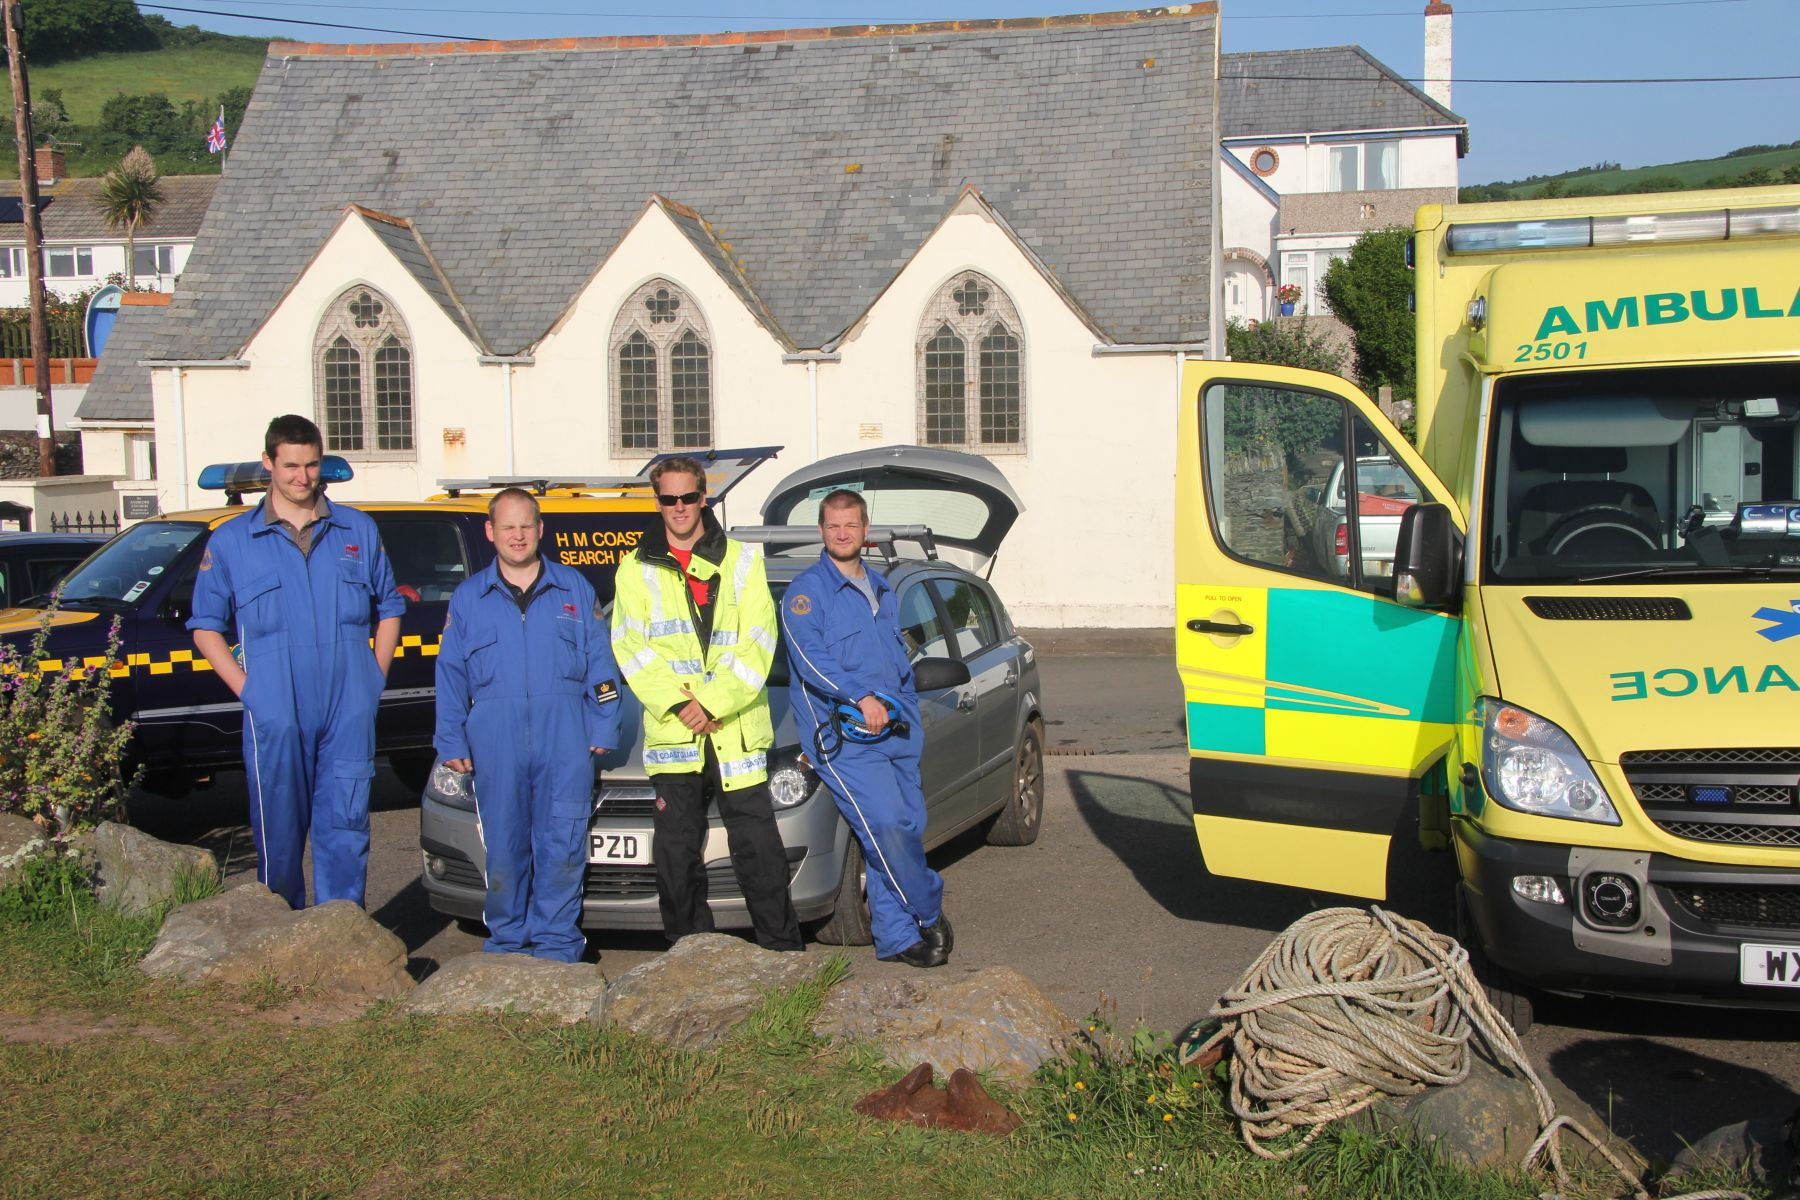 Prawle Coastguard team after the casualty was in the ambulance